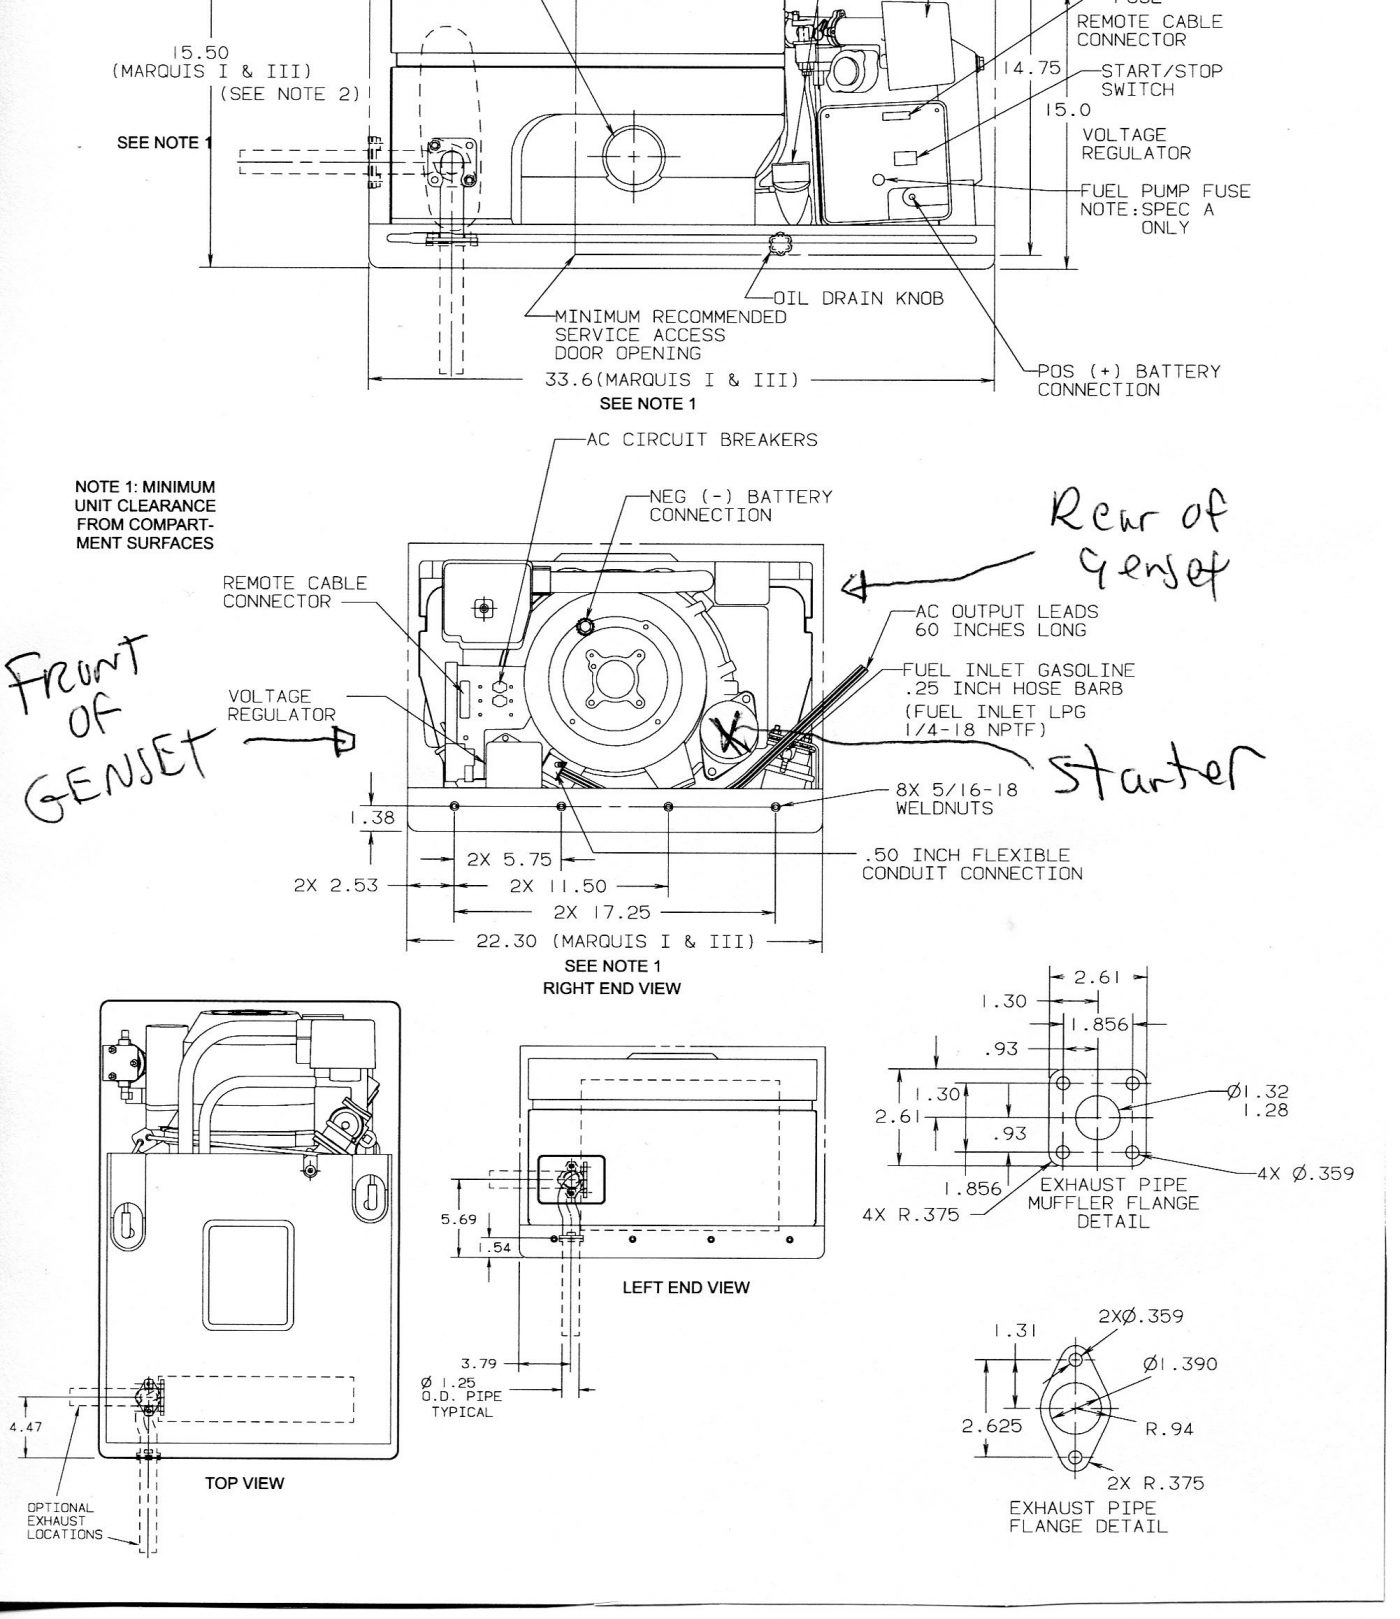 Electrical Symbols Drawing At Free For Personal Boiler Wiring Diagram 1400x1619 Canadian Choice Image